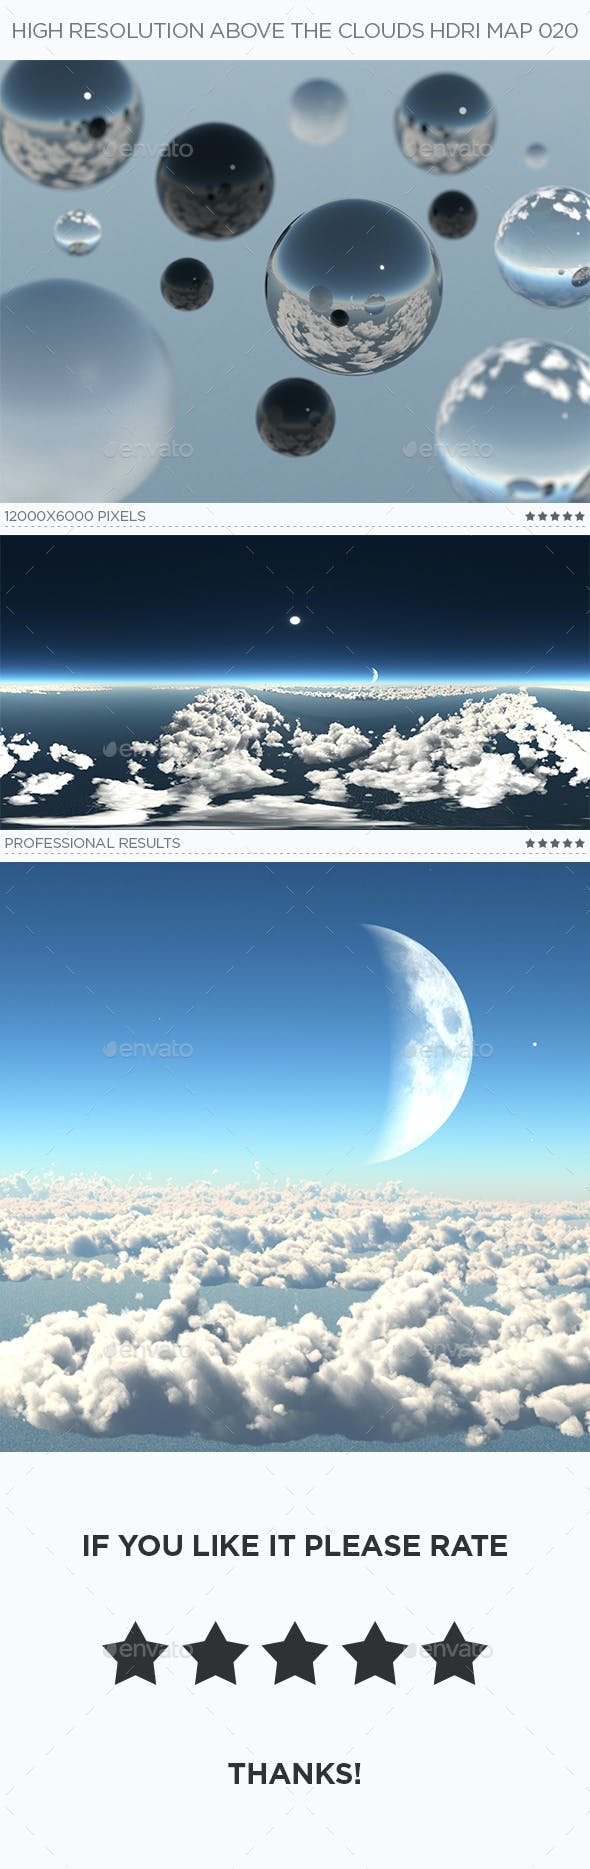 High Resolution Above The Clouds HDRi Map 020 - 3DOcean Item for Sale